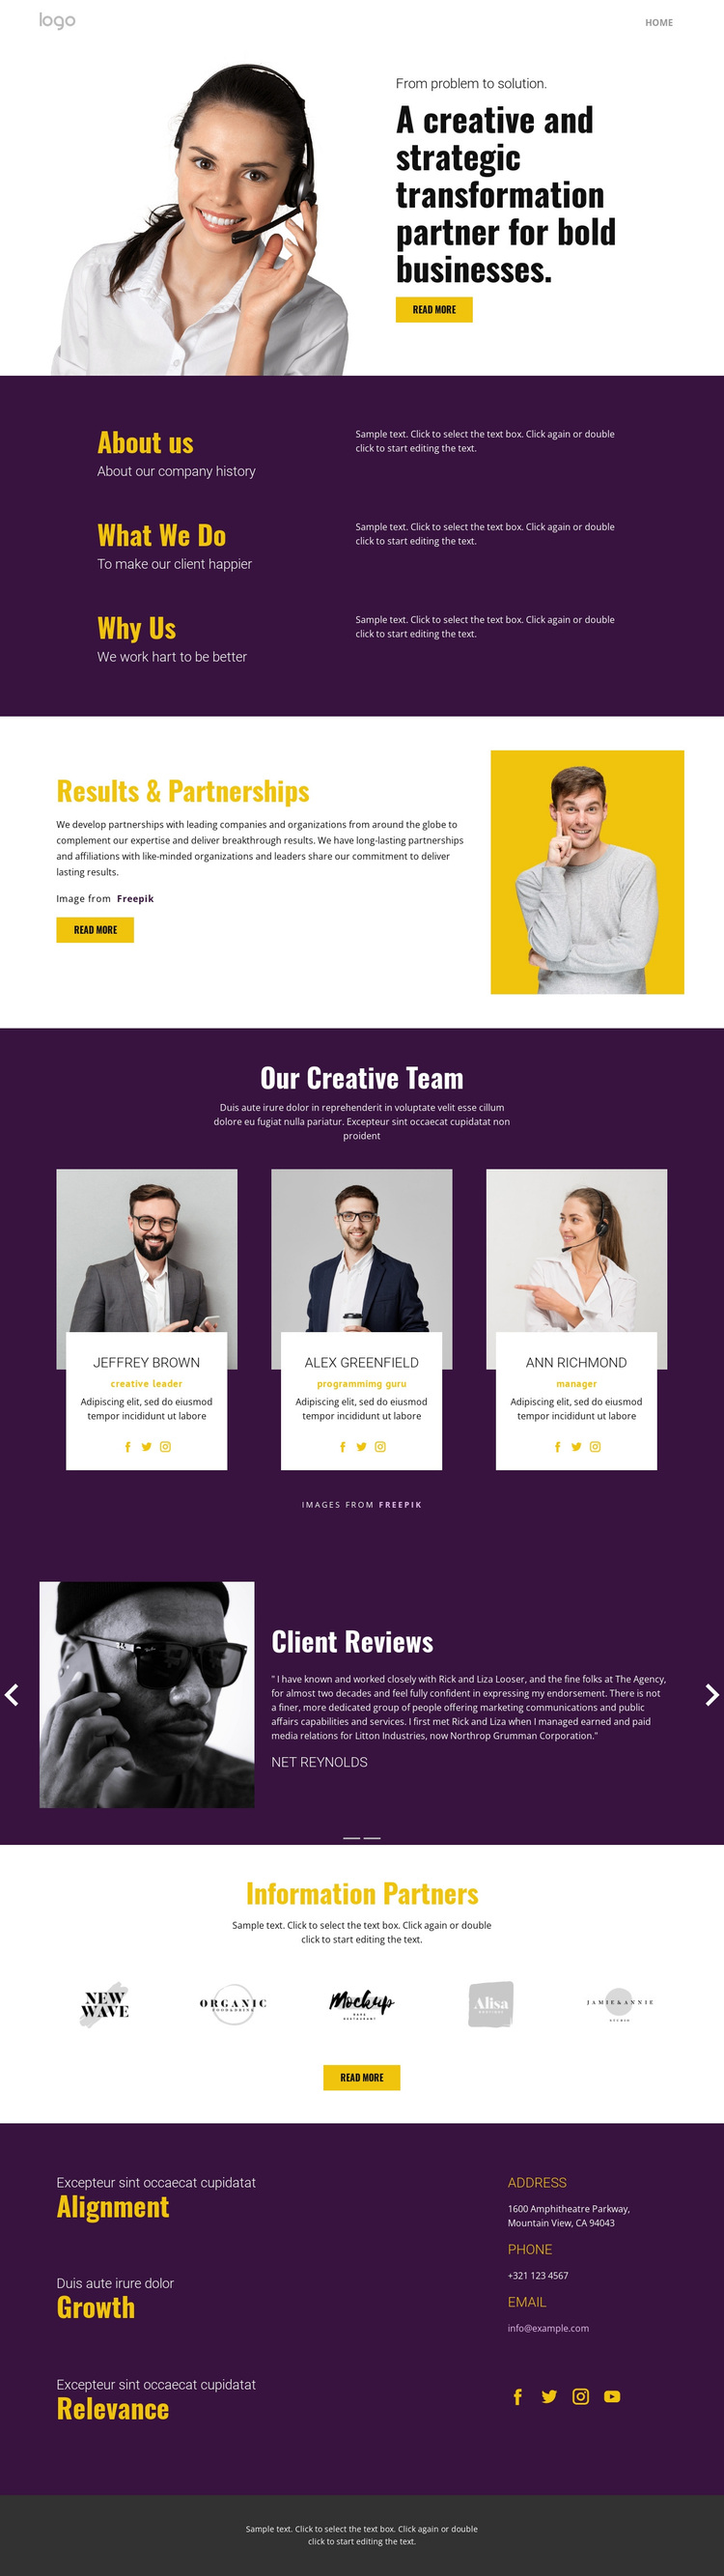 Creative strategy in business Joomla Page Builder